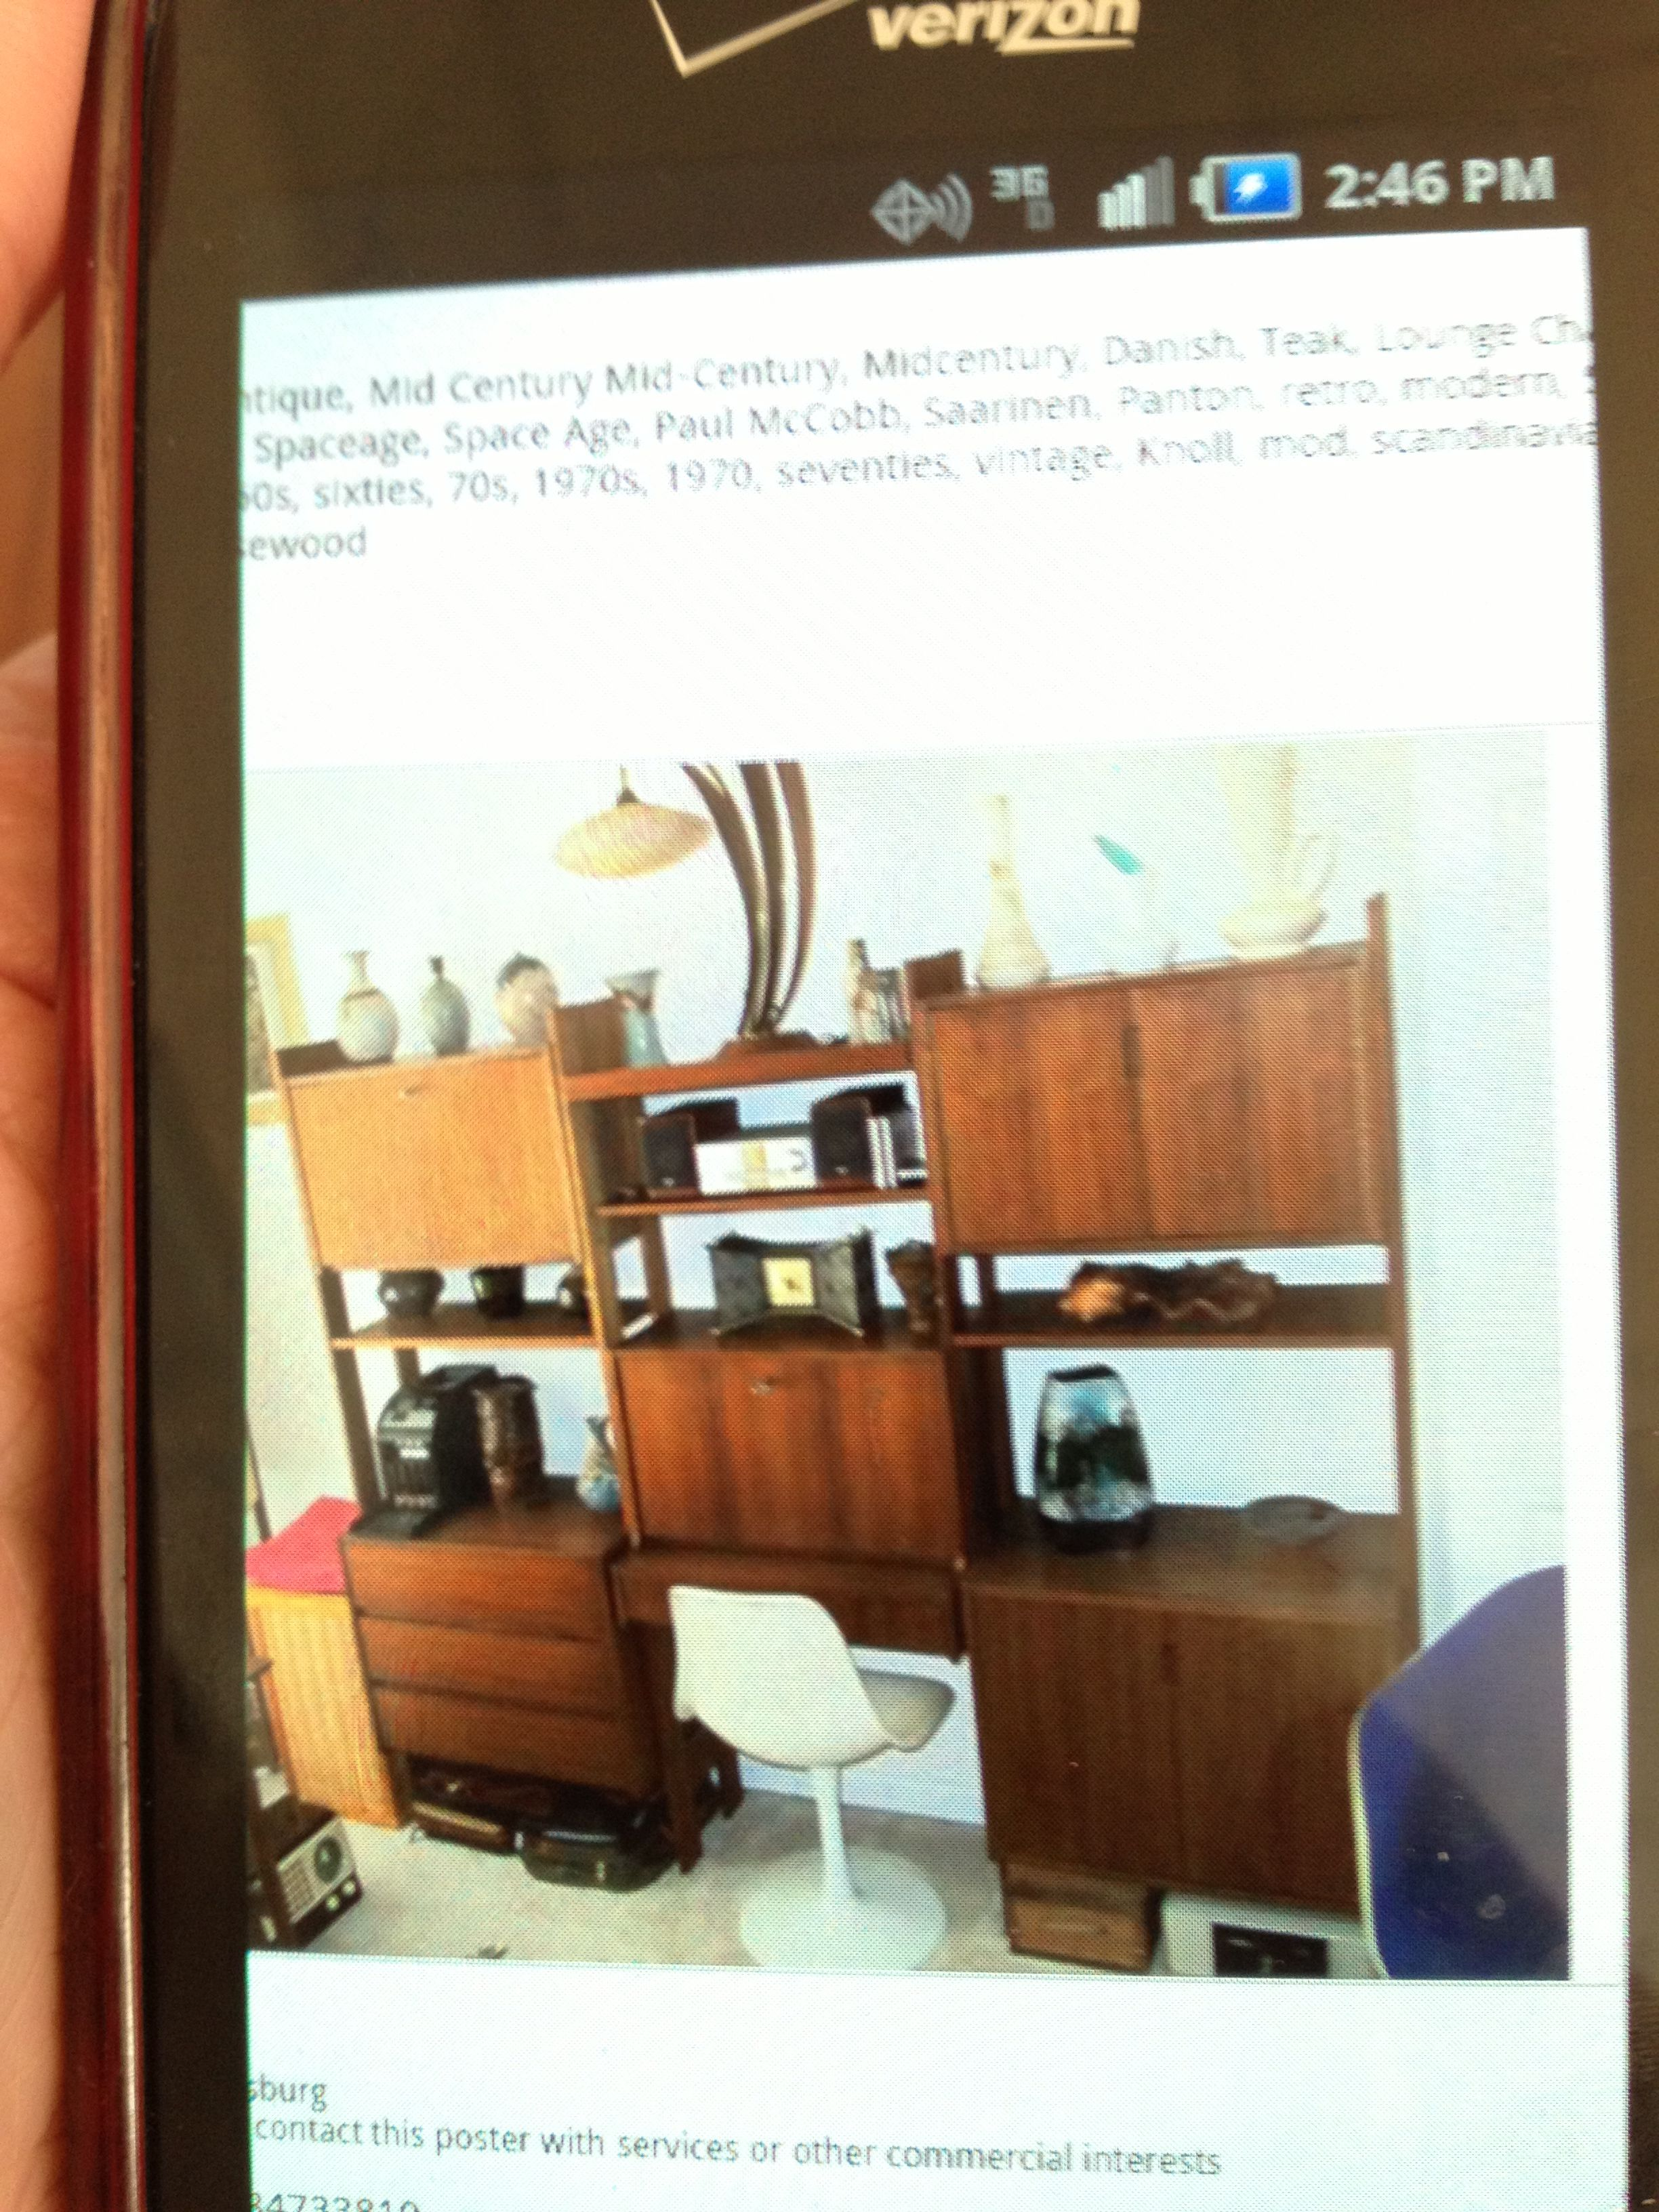 Mid Century Modular Office Wall Unit From Craigslist 750 Guest Room Office Office Walls Wall Unit